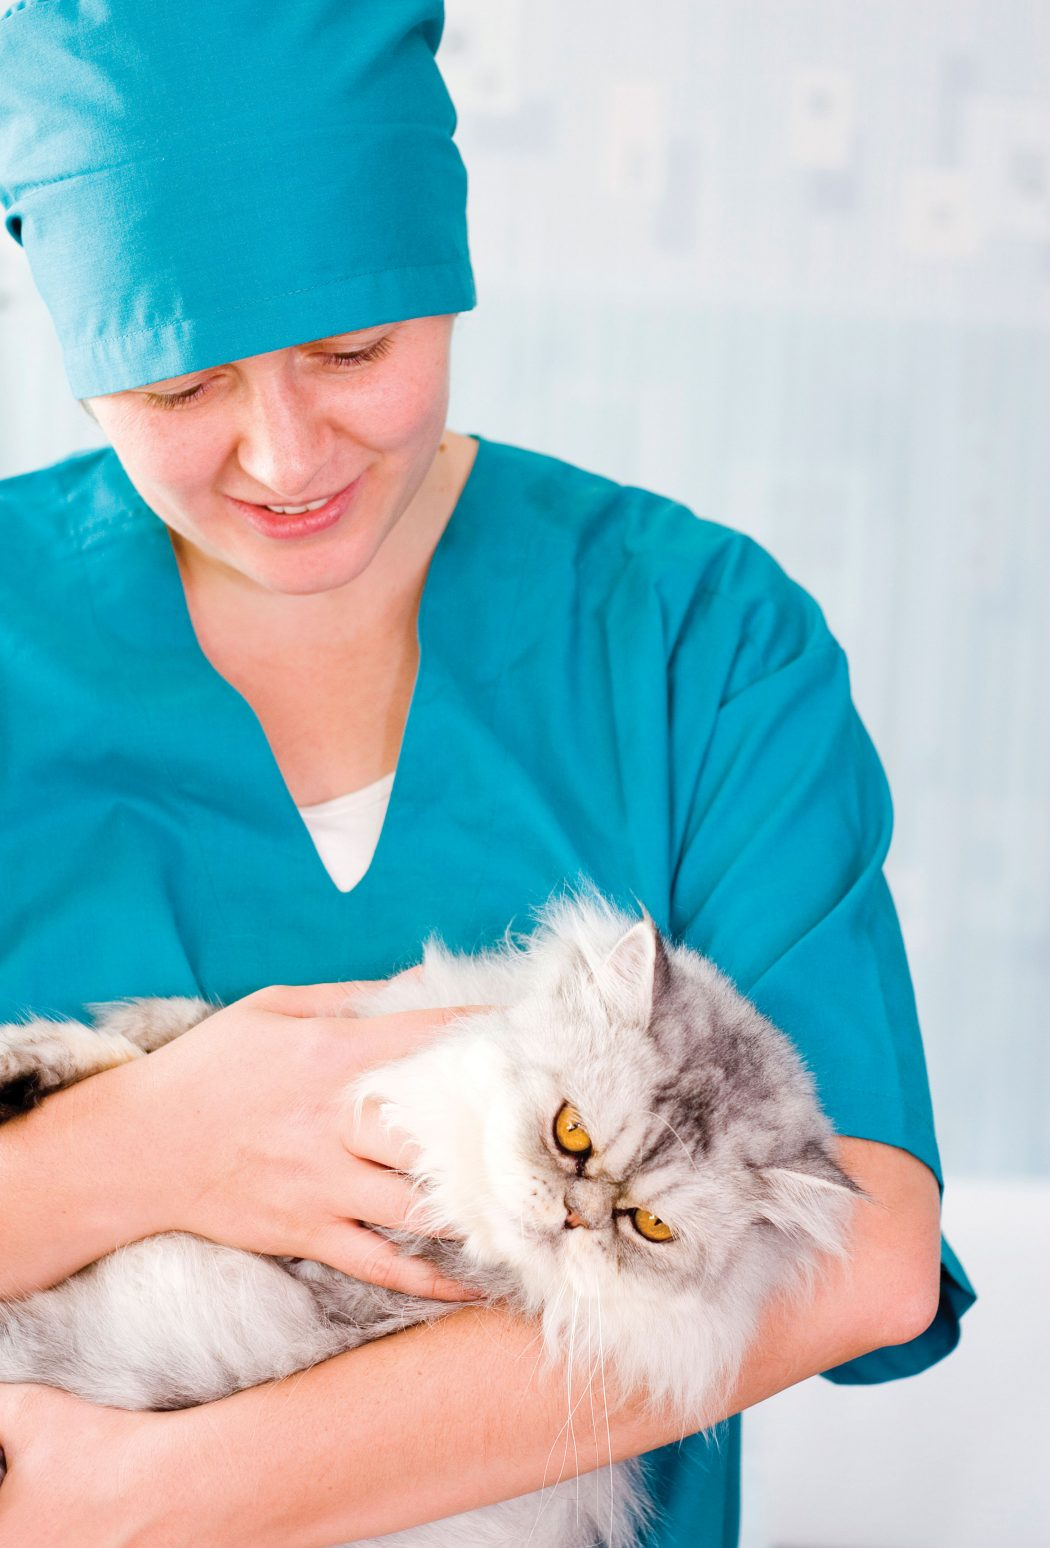 Doctor-Cat First Aid for Your Cat